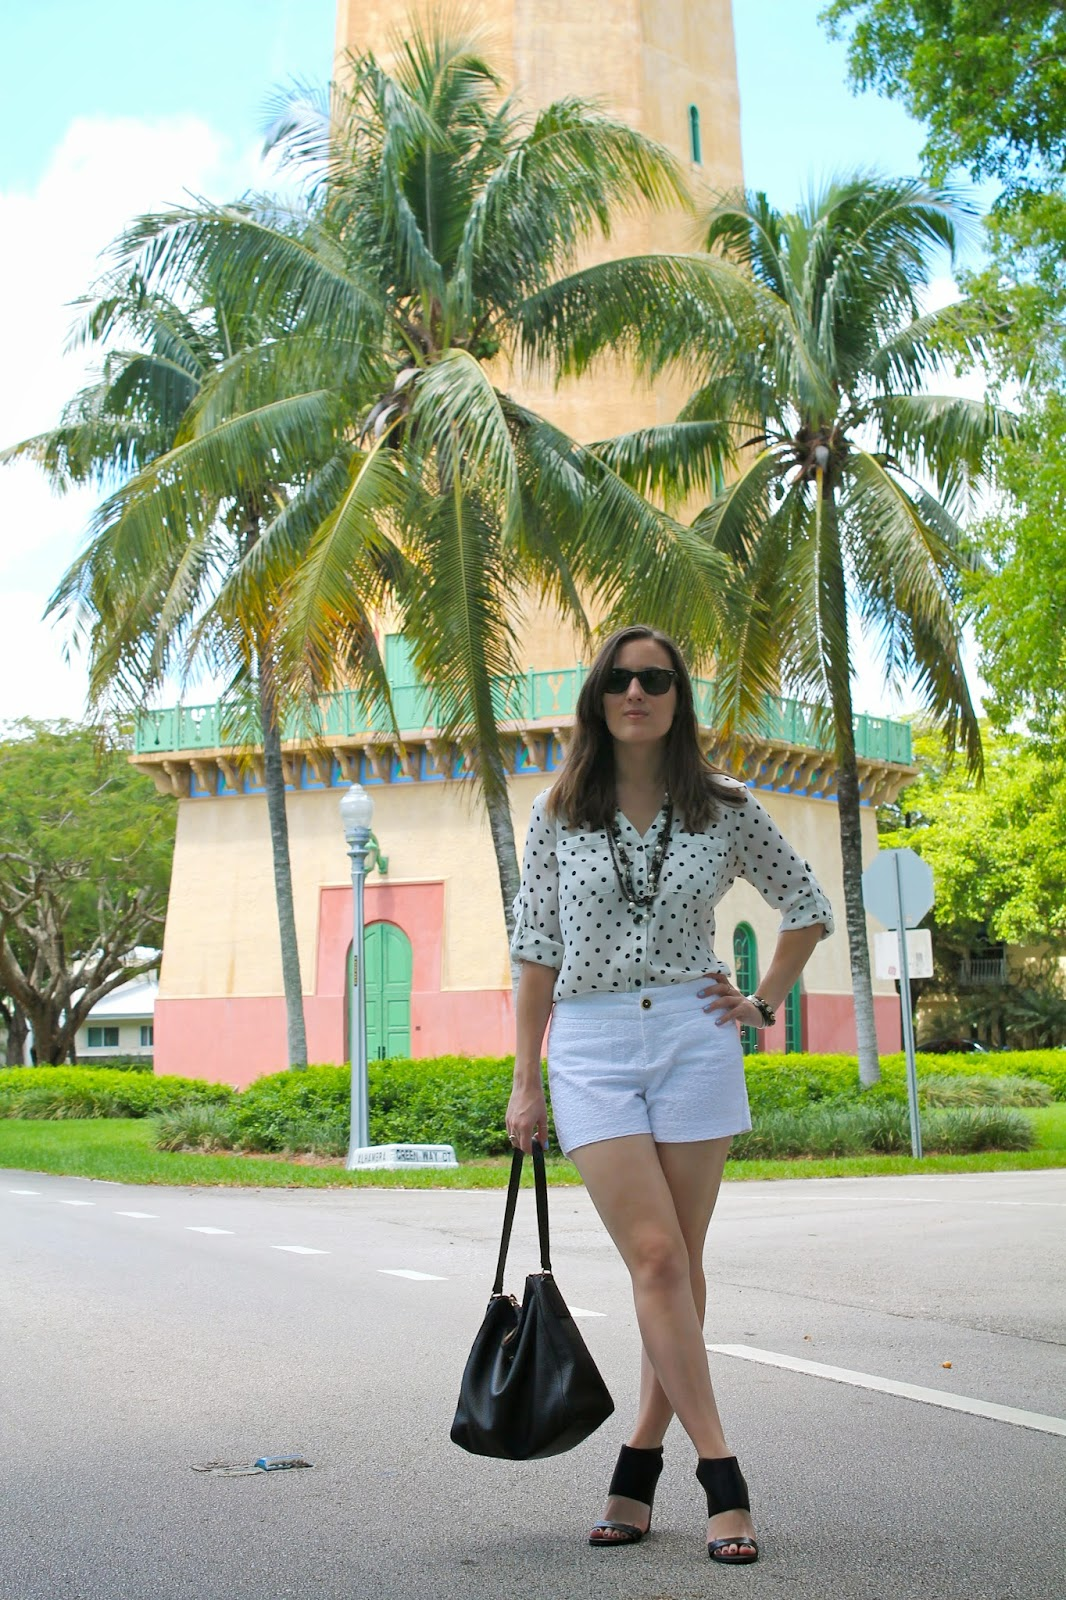 fashion, style, fashion blog, style blog, Miami fashion, Miami fashion blogger, Express, Ray-Ban, Kate Spade, J.Crew, BCBGeneration, M.I.A., Chanel, summer style, outfit ideas